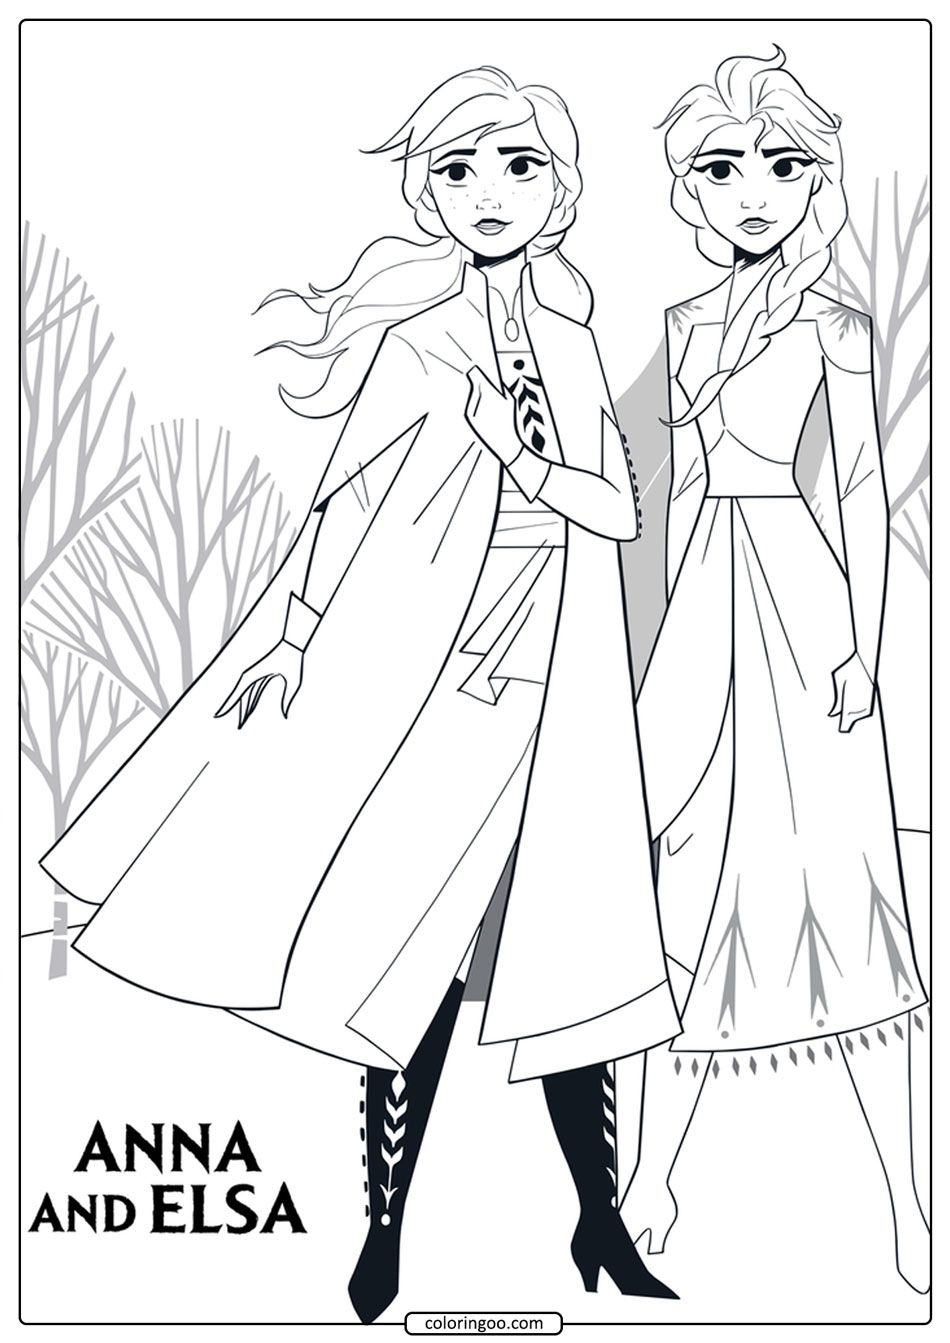 Anna And Elsa Coloring Pages In 2020 Disney Princess Coloring Pages Princess Coloring Pages Frozen Coloring